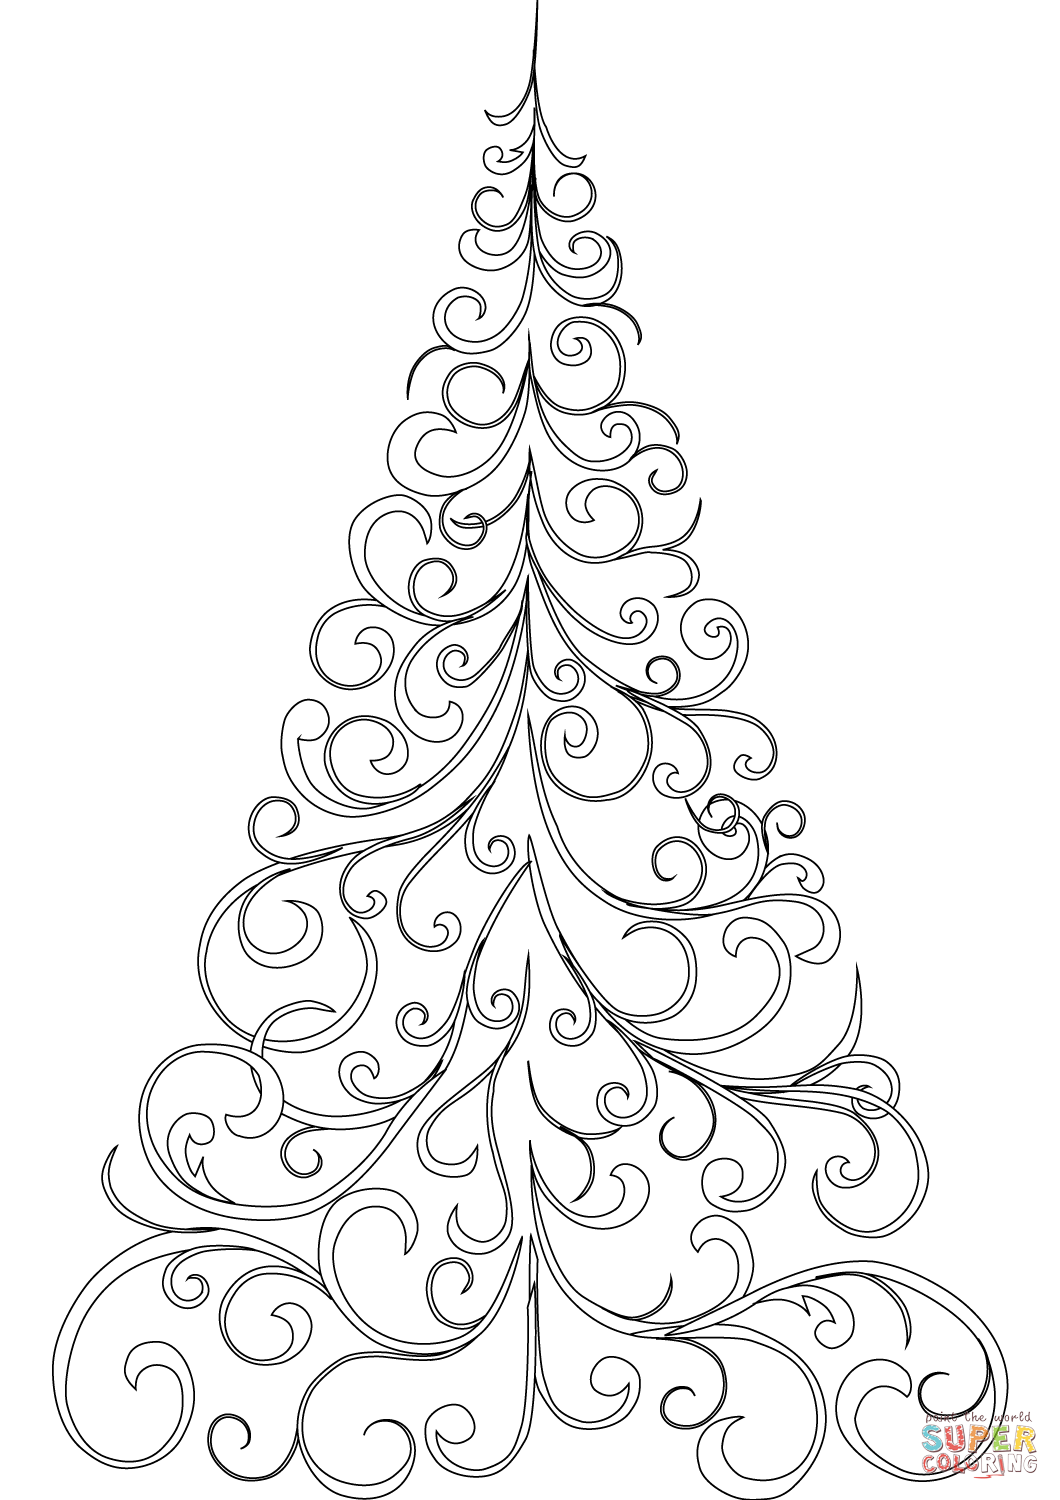 Merry Christmas Tree Coloring Page With Swirly Free Printable Pages